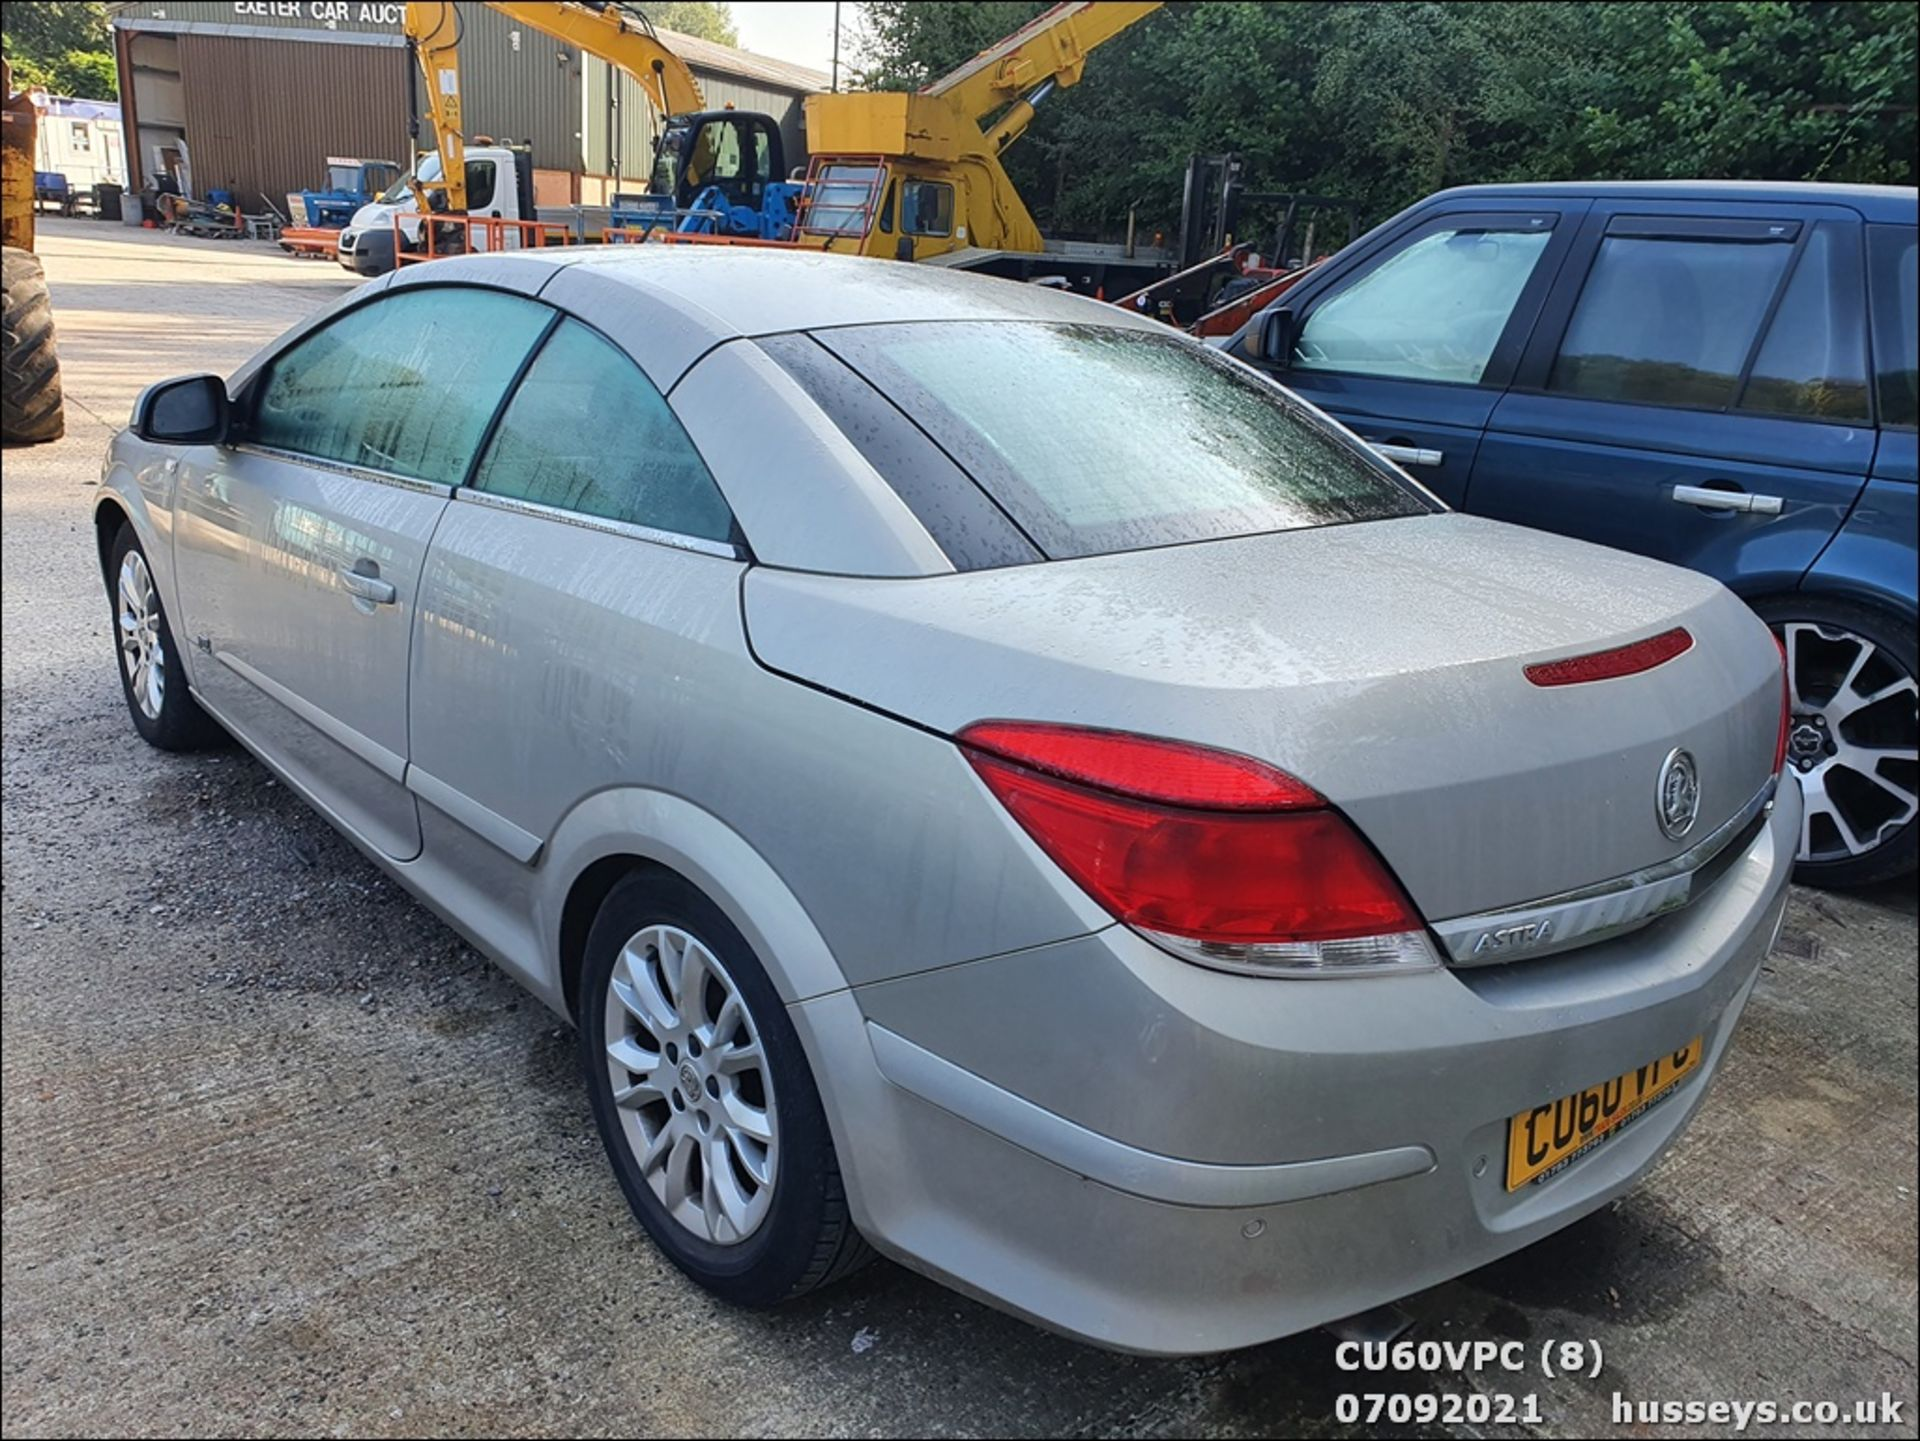 11/60 VAUXHALL ASTRA SPORT - 1796cc 2dr Convertible (Silver, 123k) - Image 8 of 12